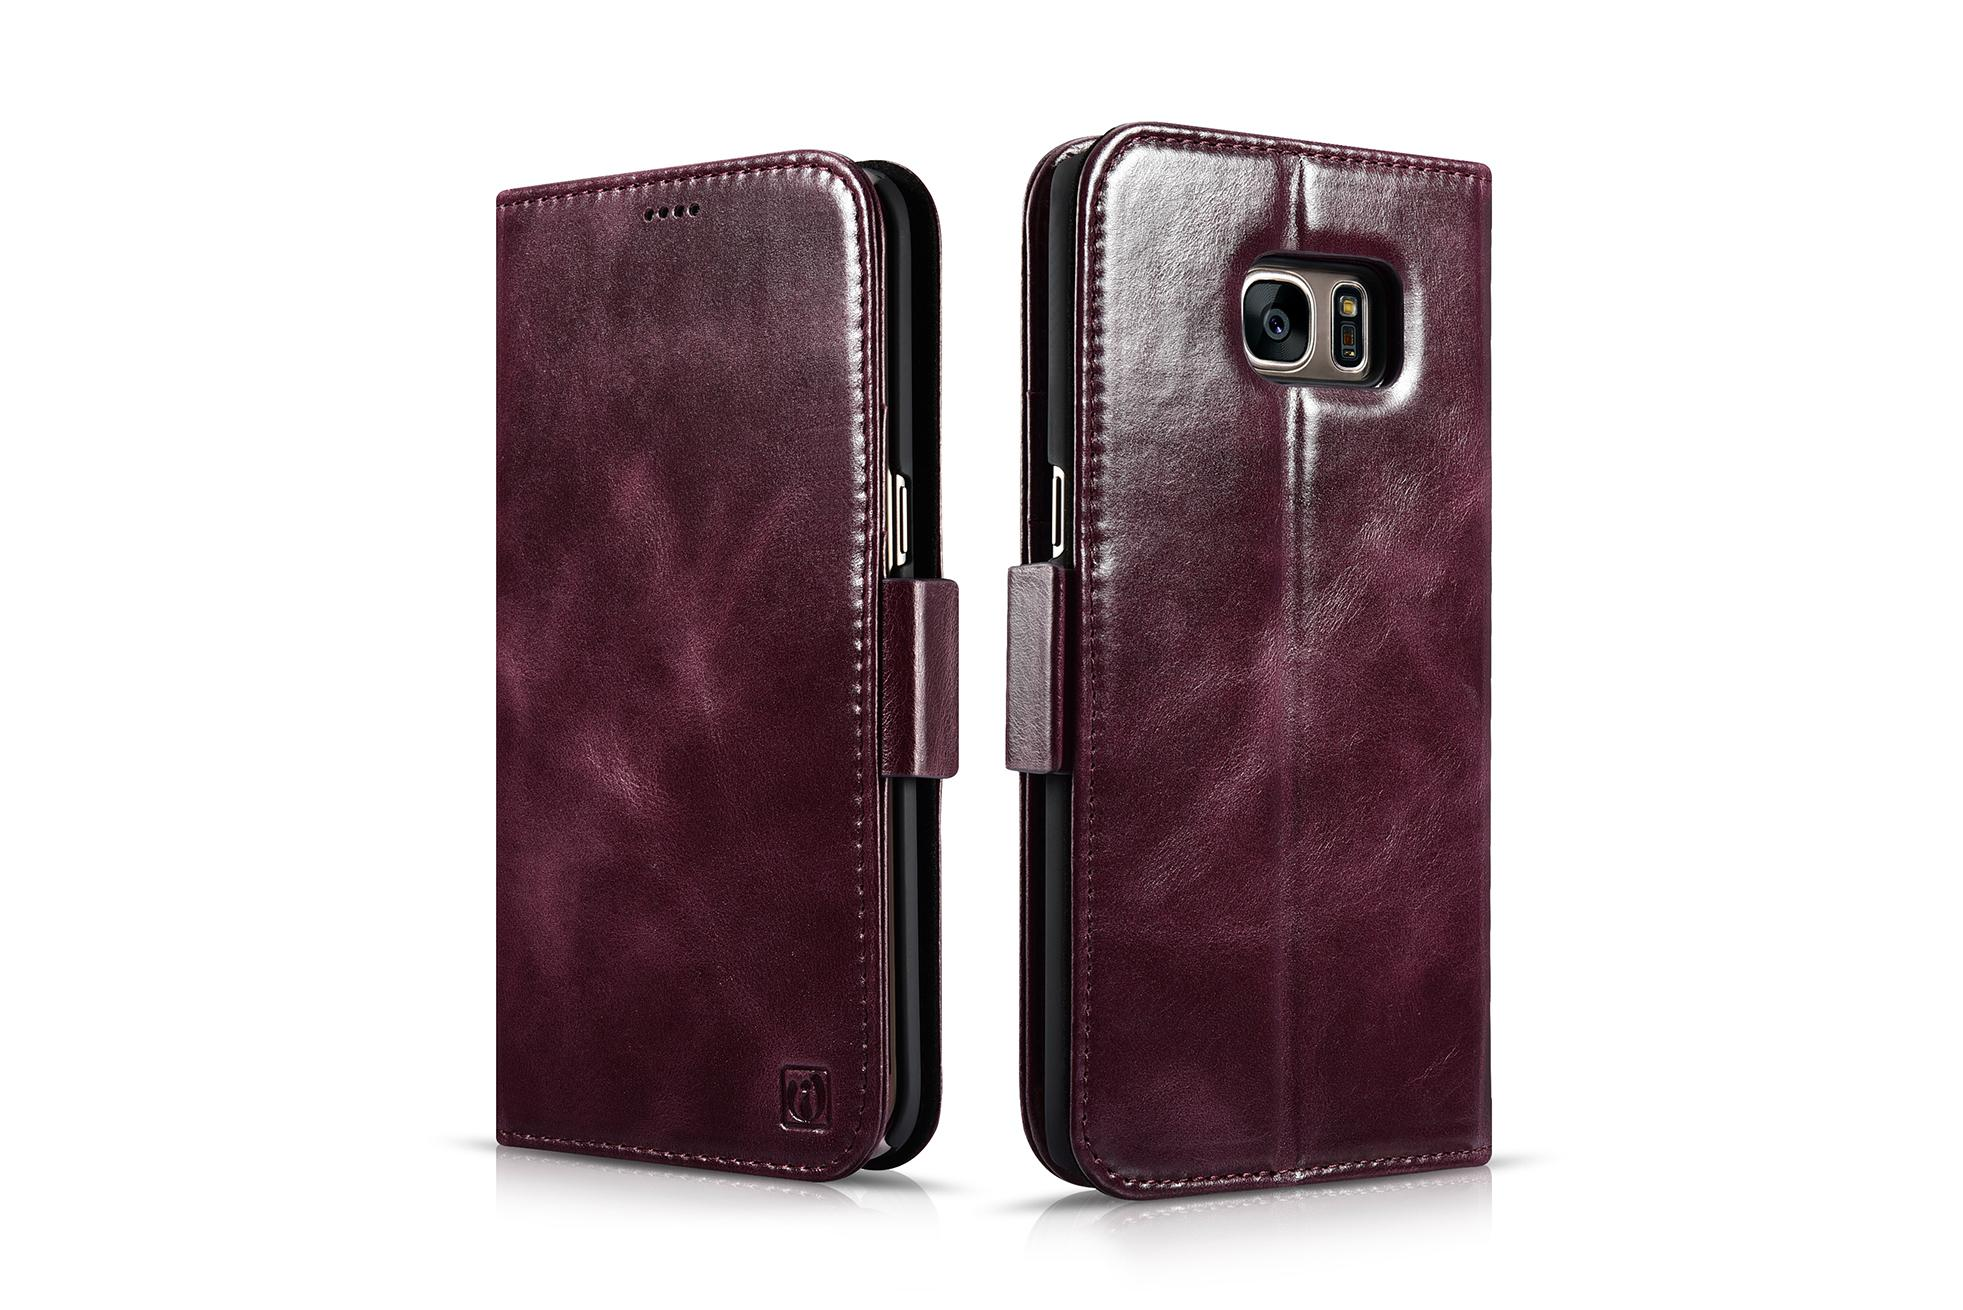 iCarer Samsung Galaxy S7 Edge Leather Detachable 2 in 1 Wallet Folio Case 2